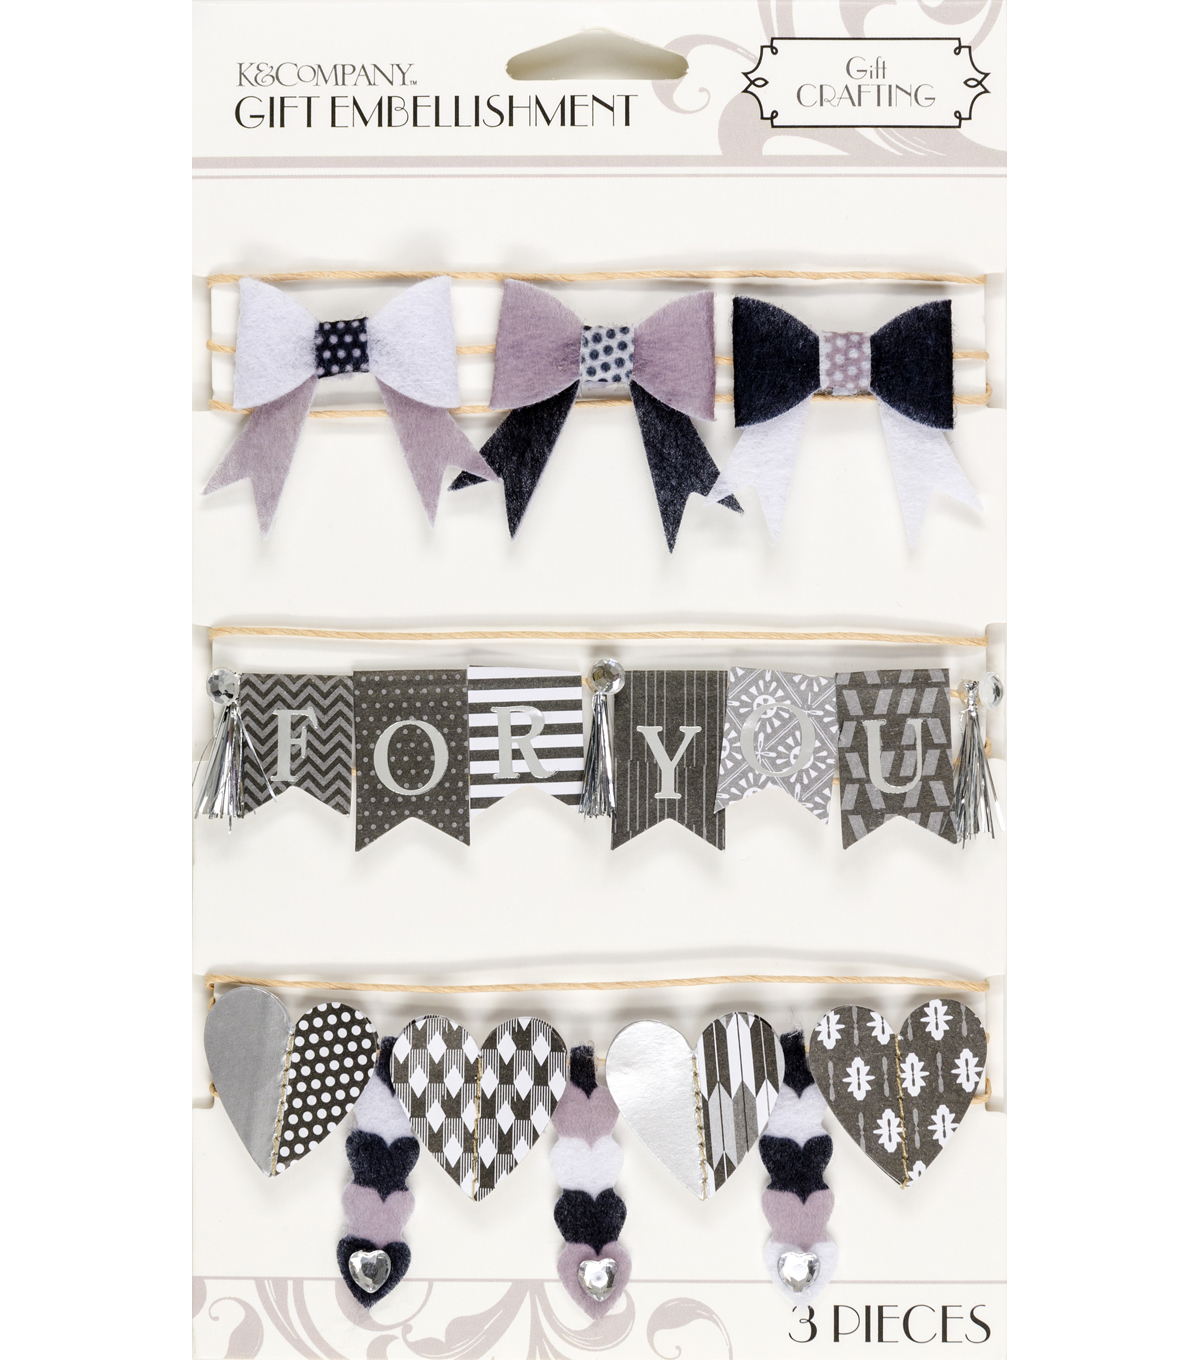 K&Company Black And White Banner Gift Embellishment